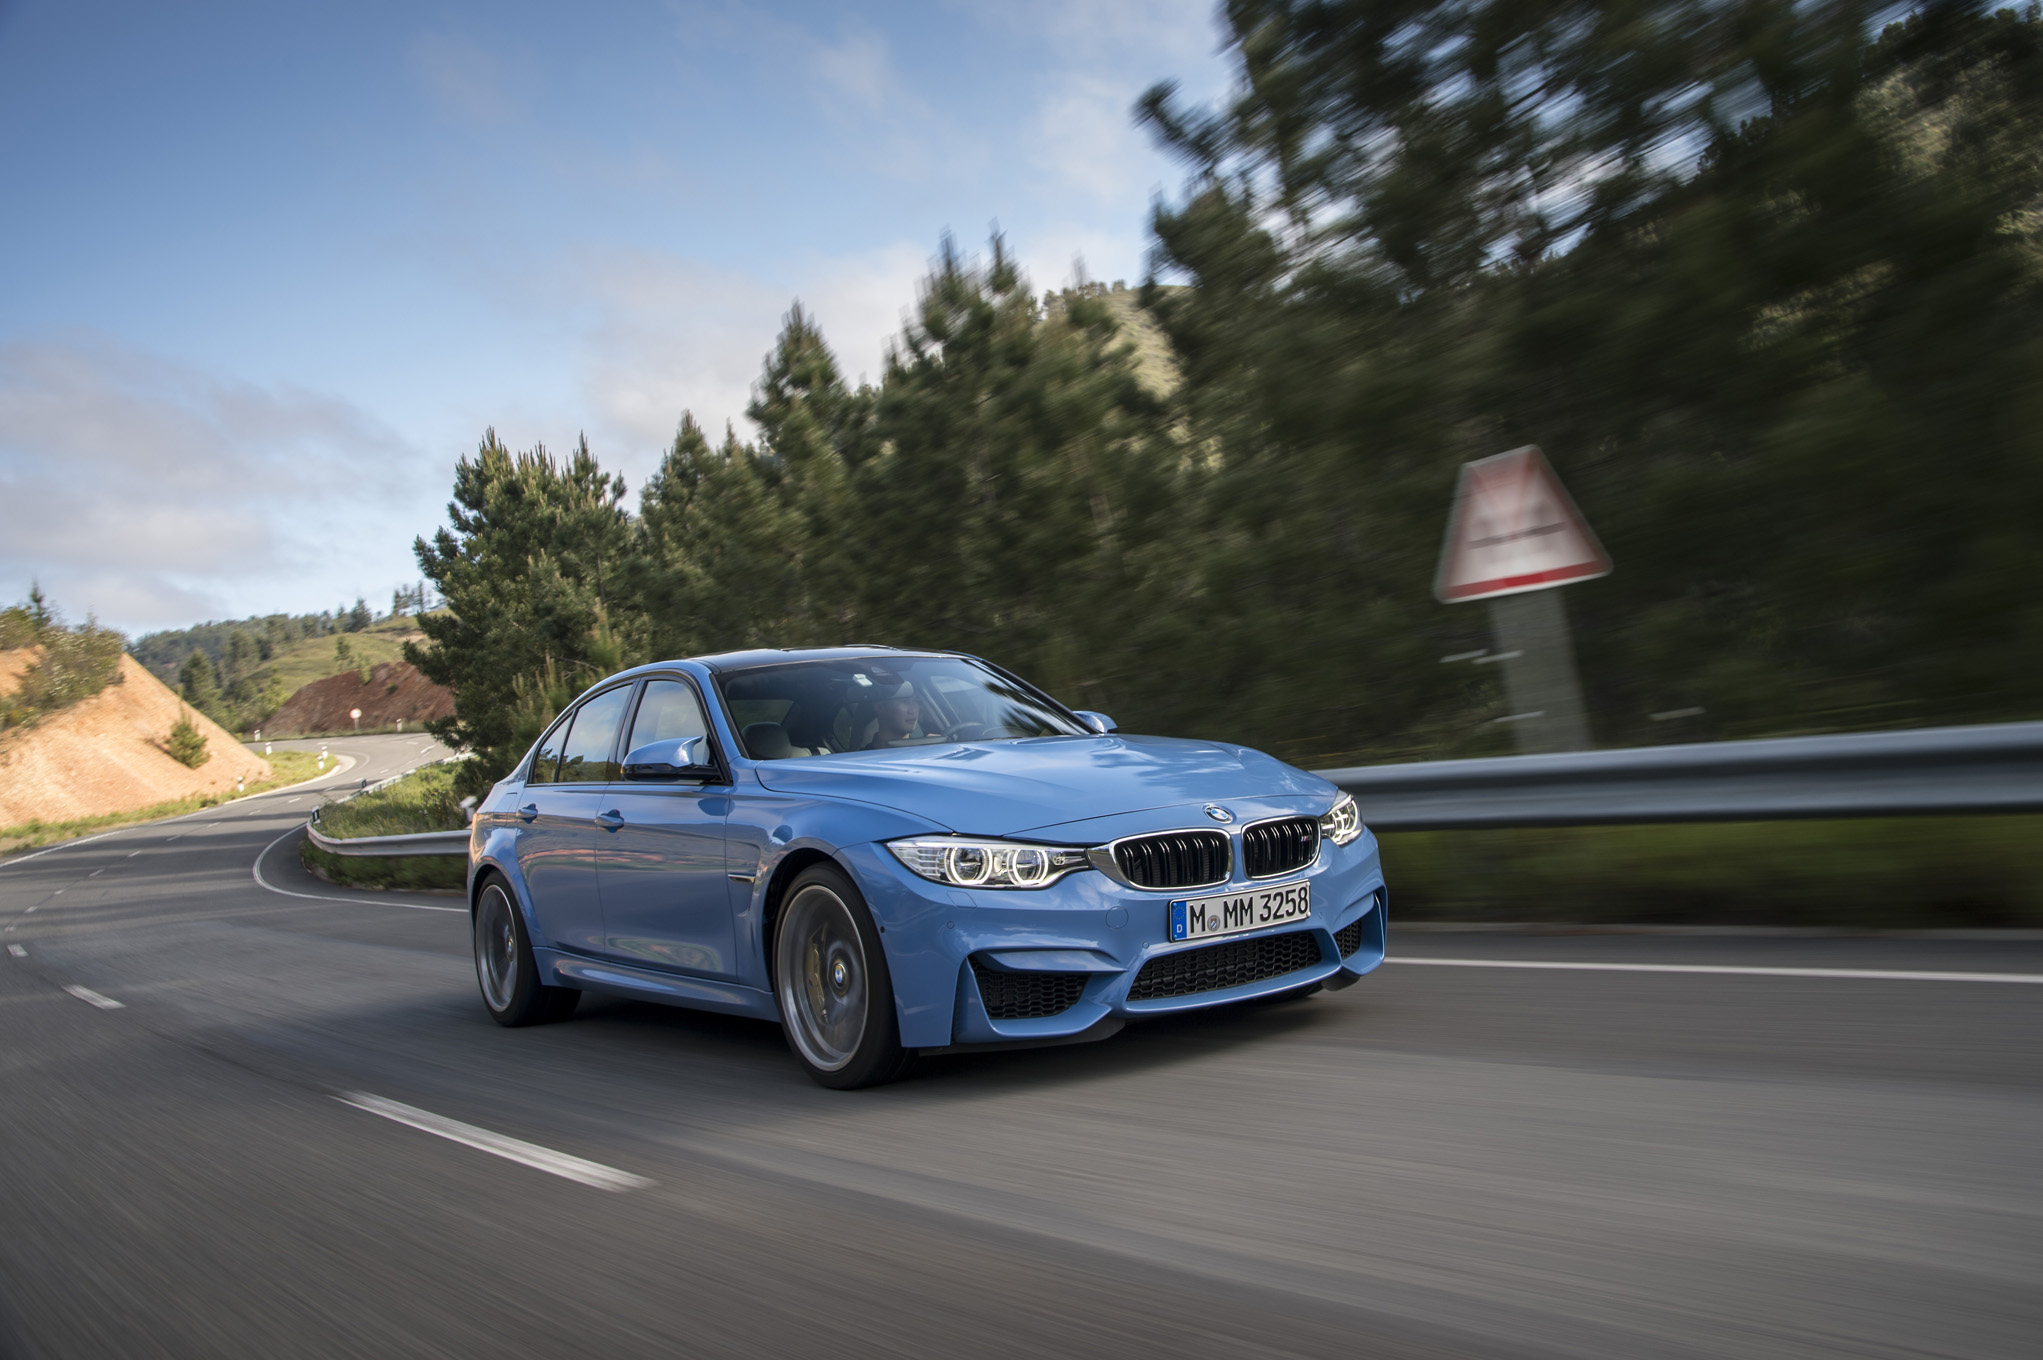 2015 Bmw M3 Test Drive View (Photo 55 of 55)